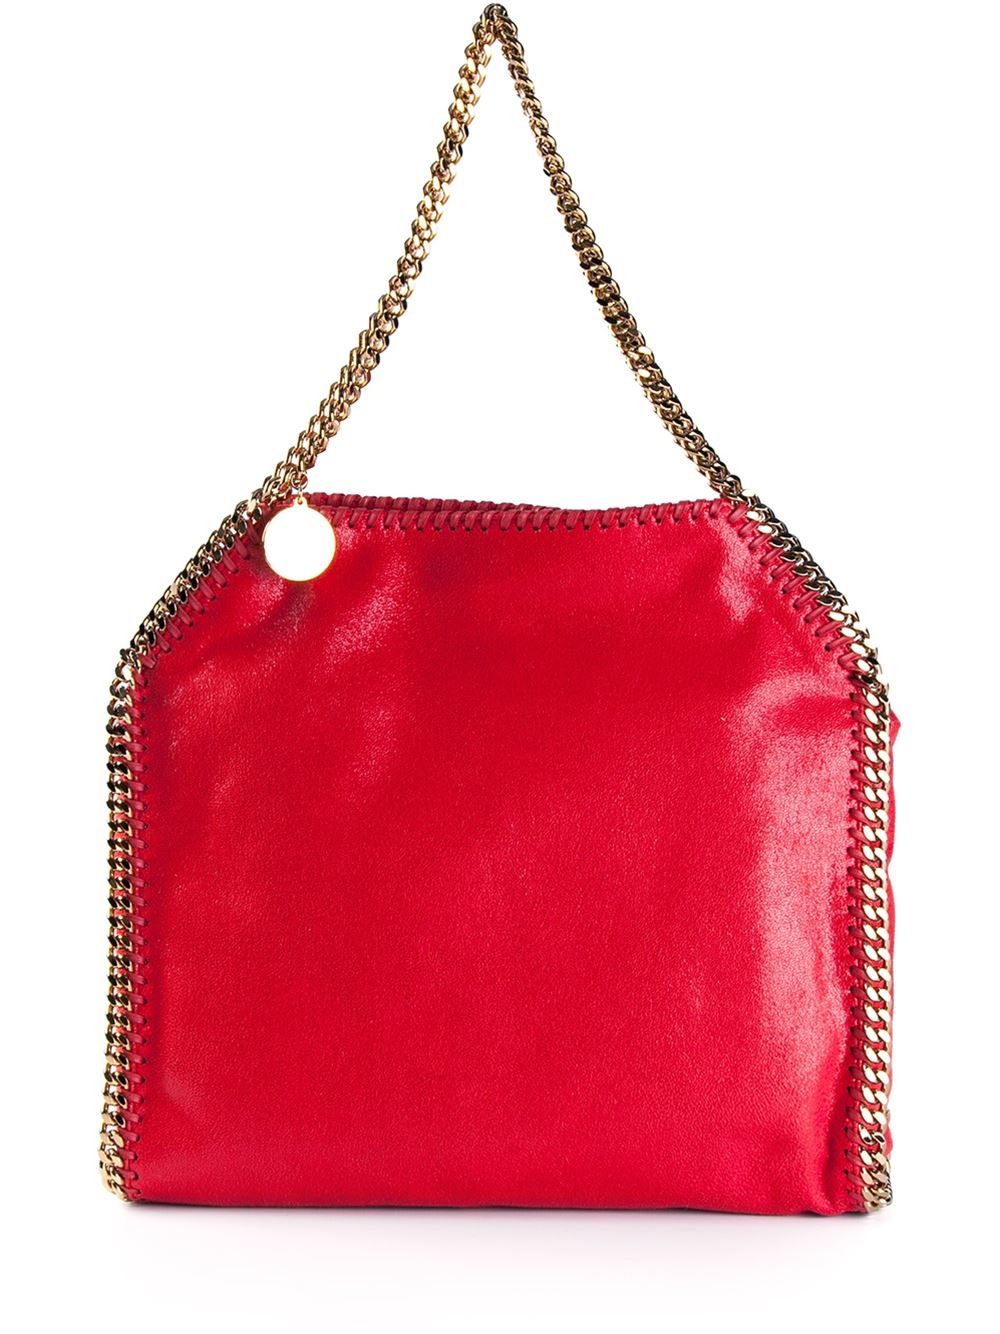 Stella Mccartney 'falabella' Shoulder Bag - Smets - Farfetch.com